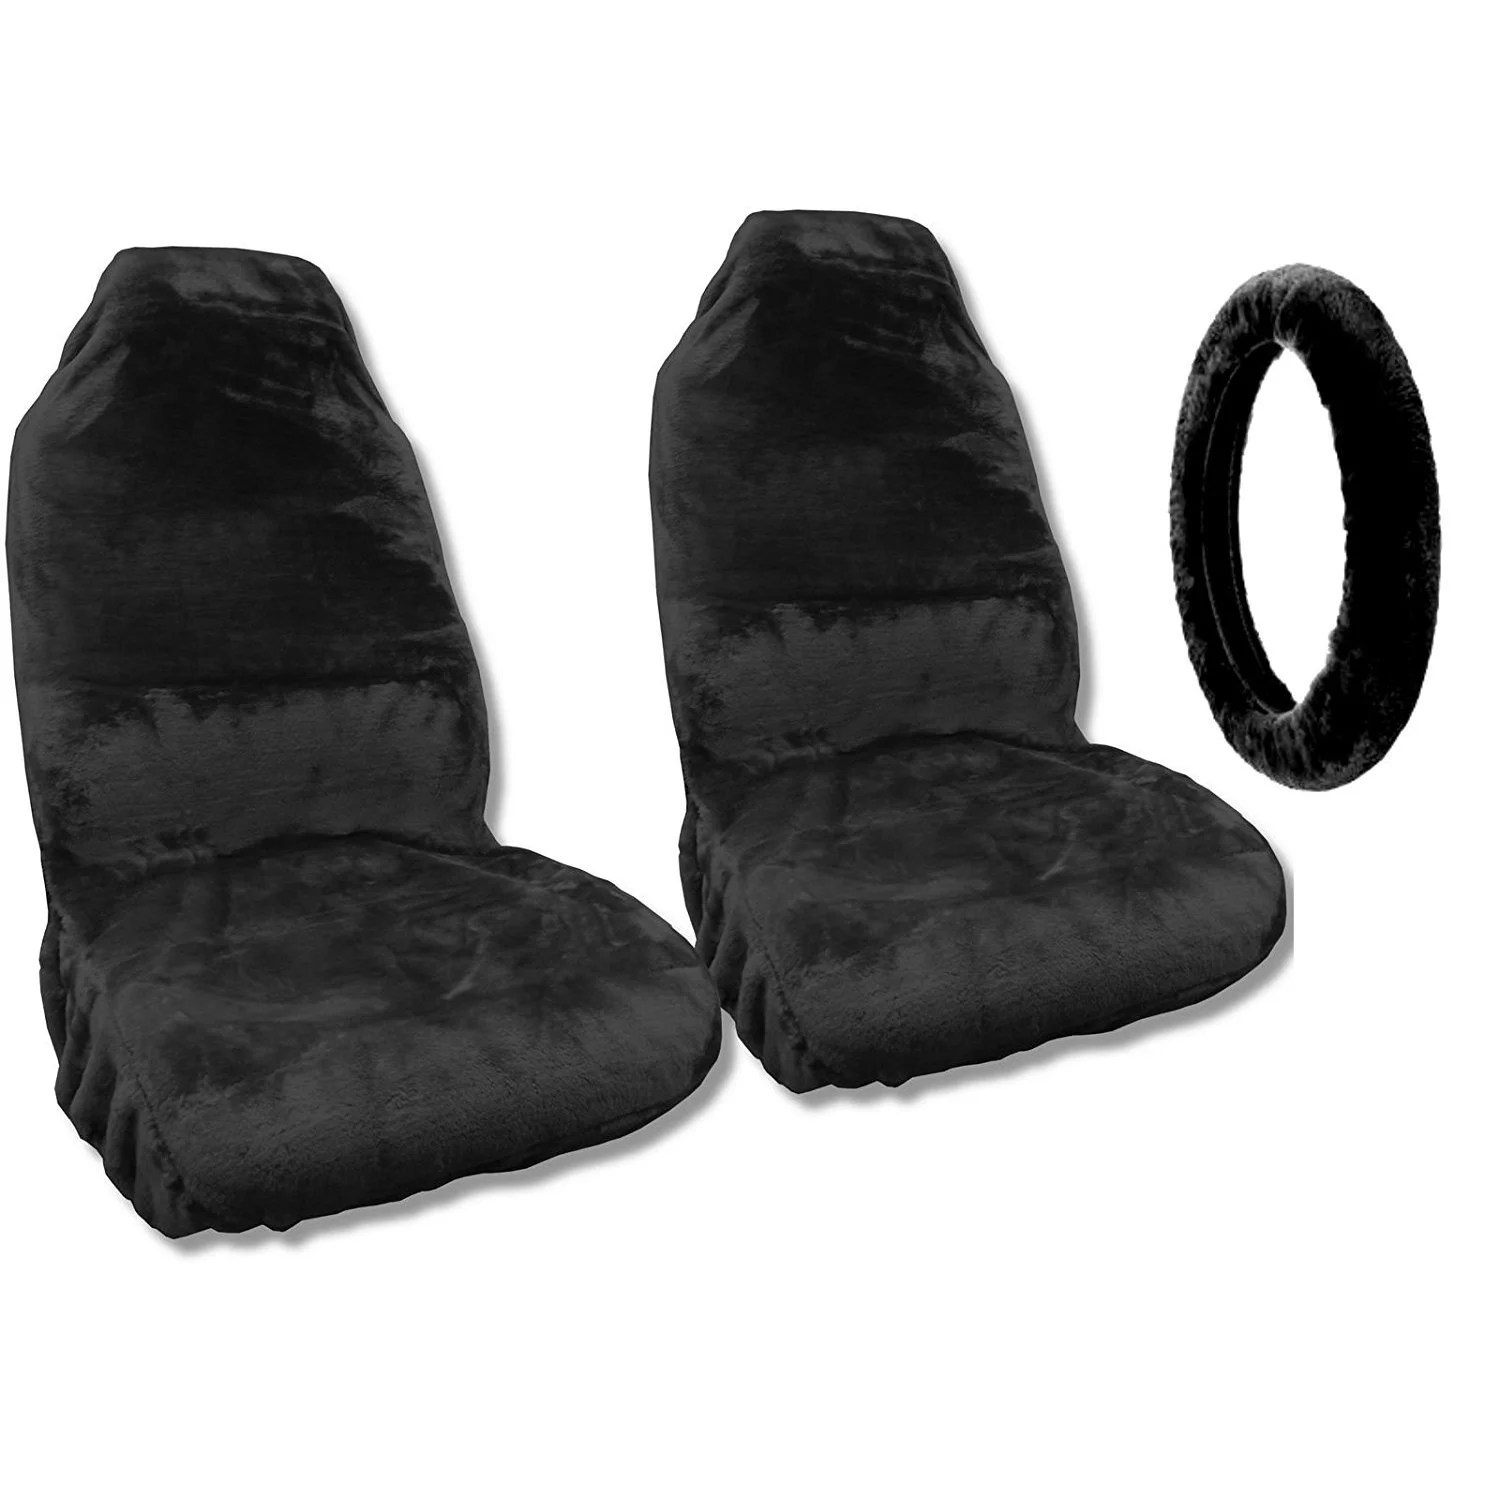 hight resolution of shop sheepskin seat covers pair steering cover black fleece fits saab 9 3 free shipping today overstock com 18696081